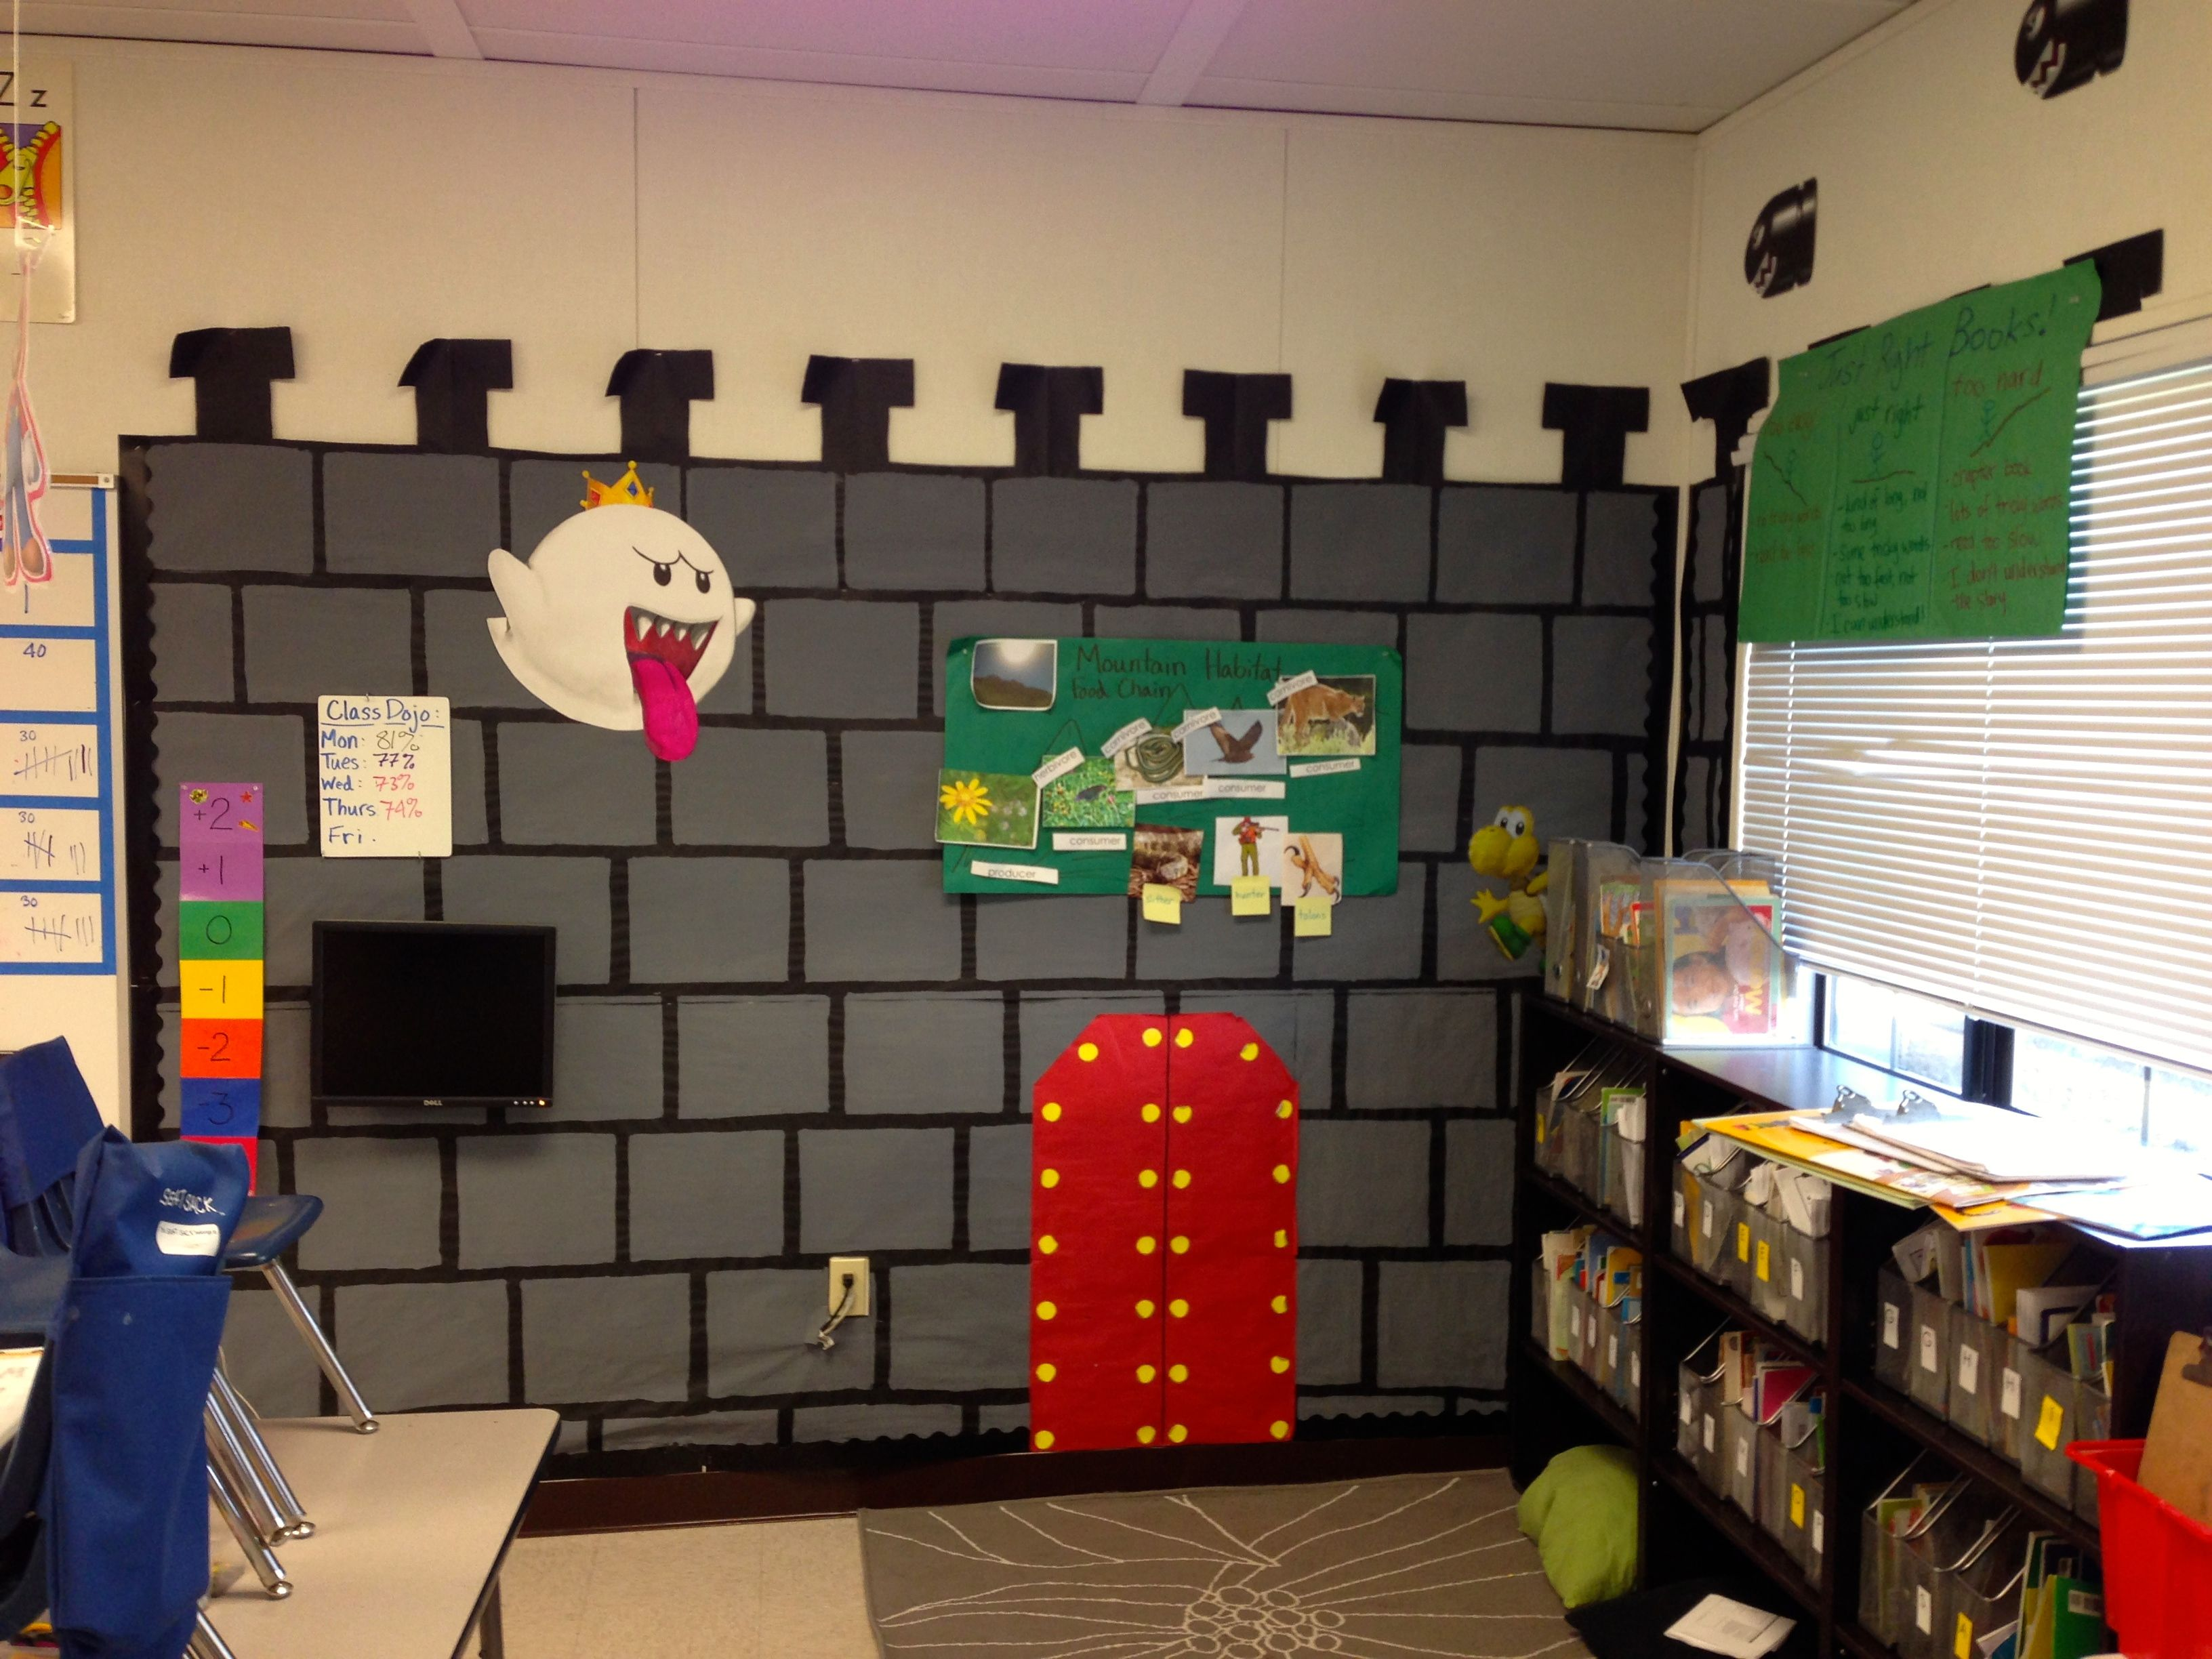 Awesome Classroom Decor ~ Mario classroom library too awesome ☼ design